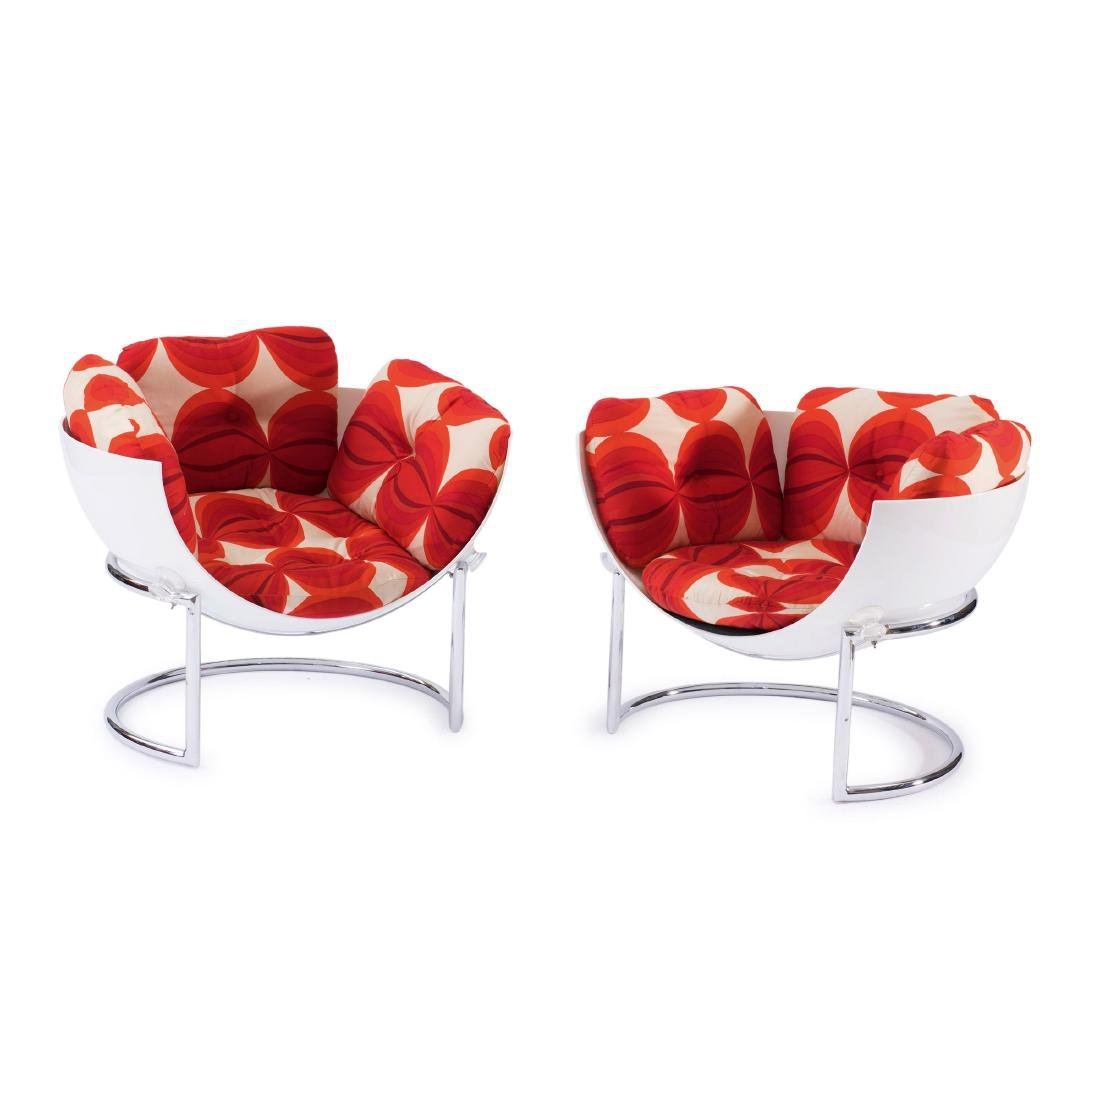 Two 'Joker' easy chairs, c. 1966